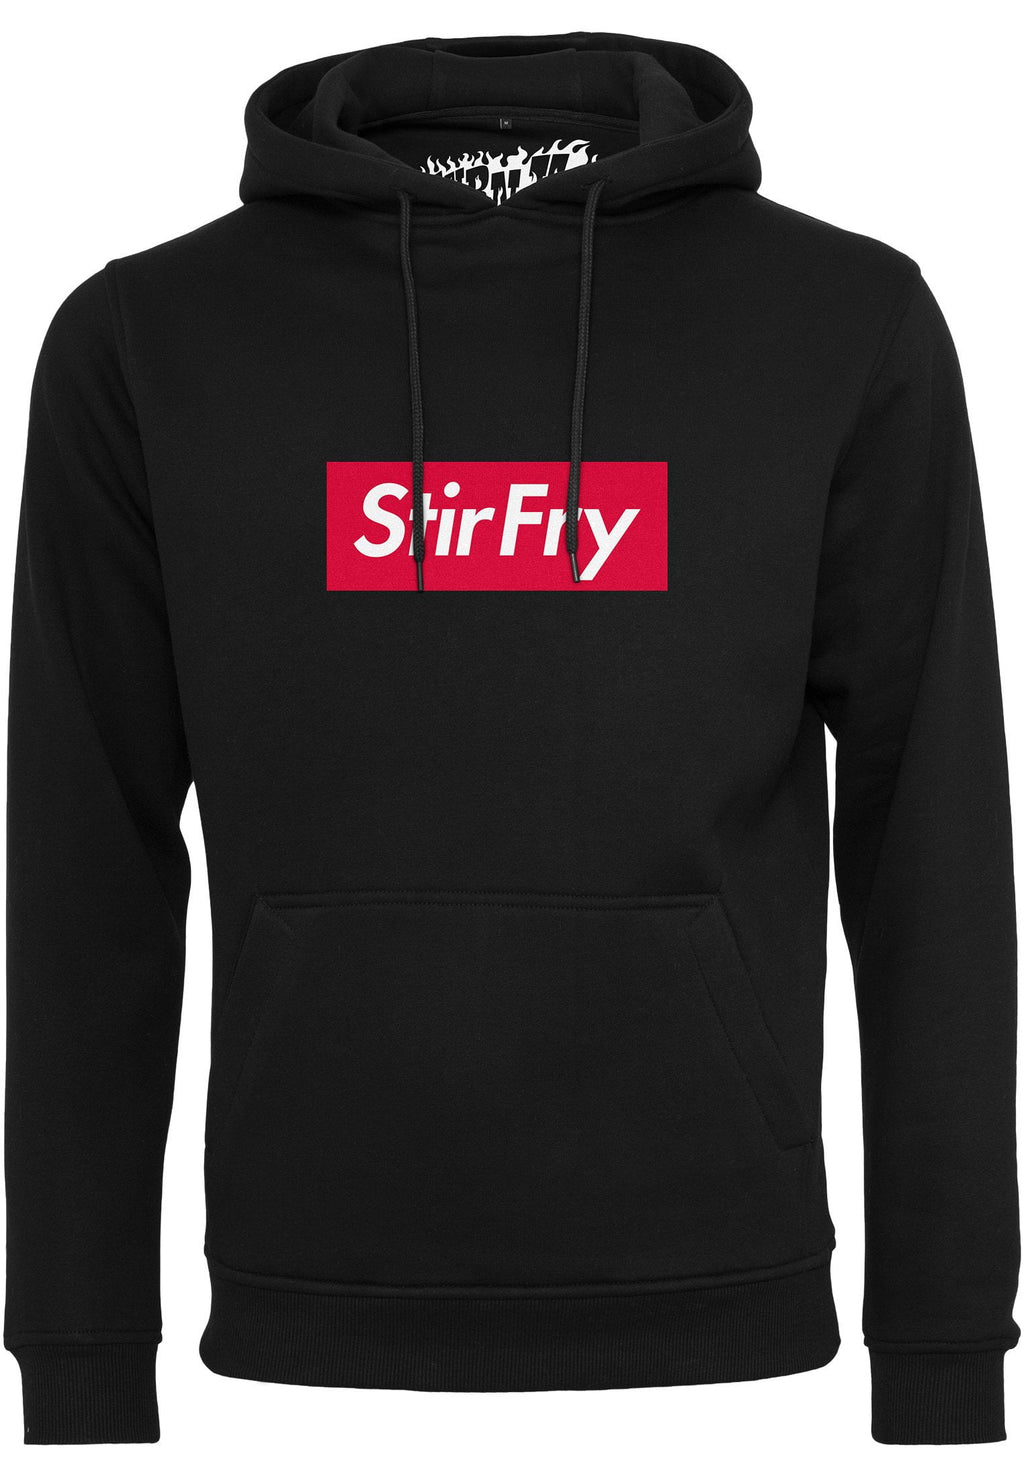 StirFry Hoody - Black